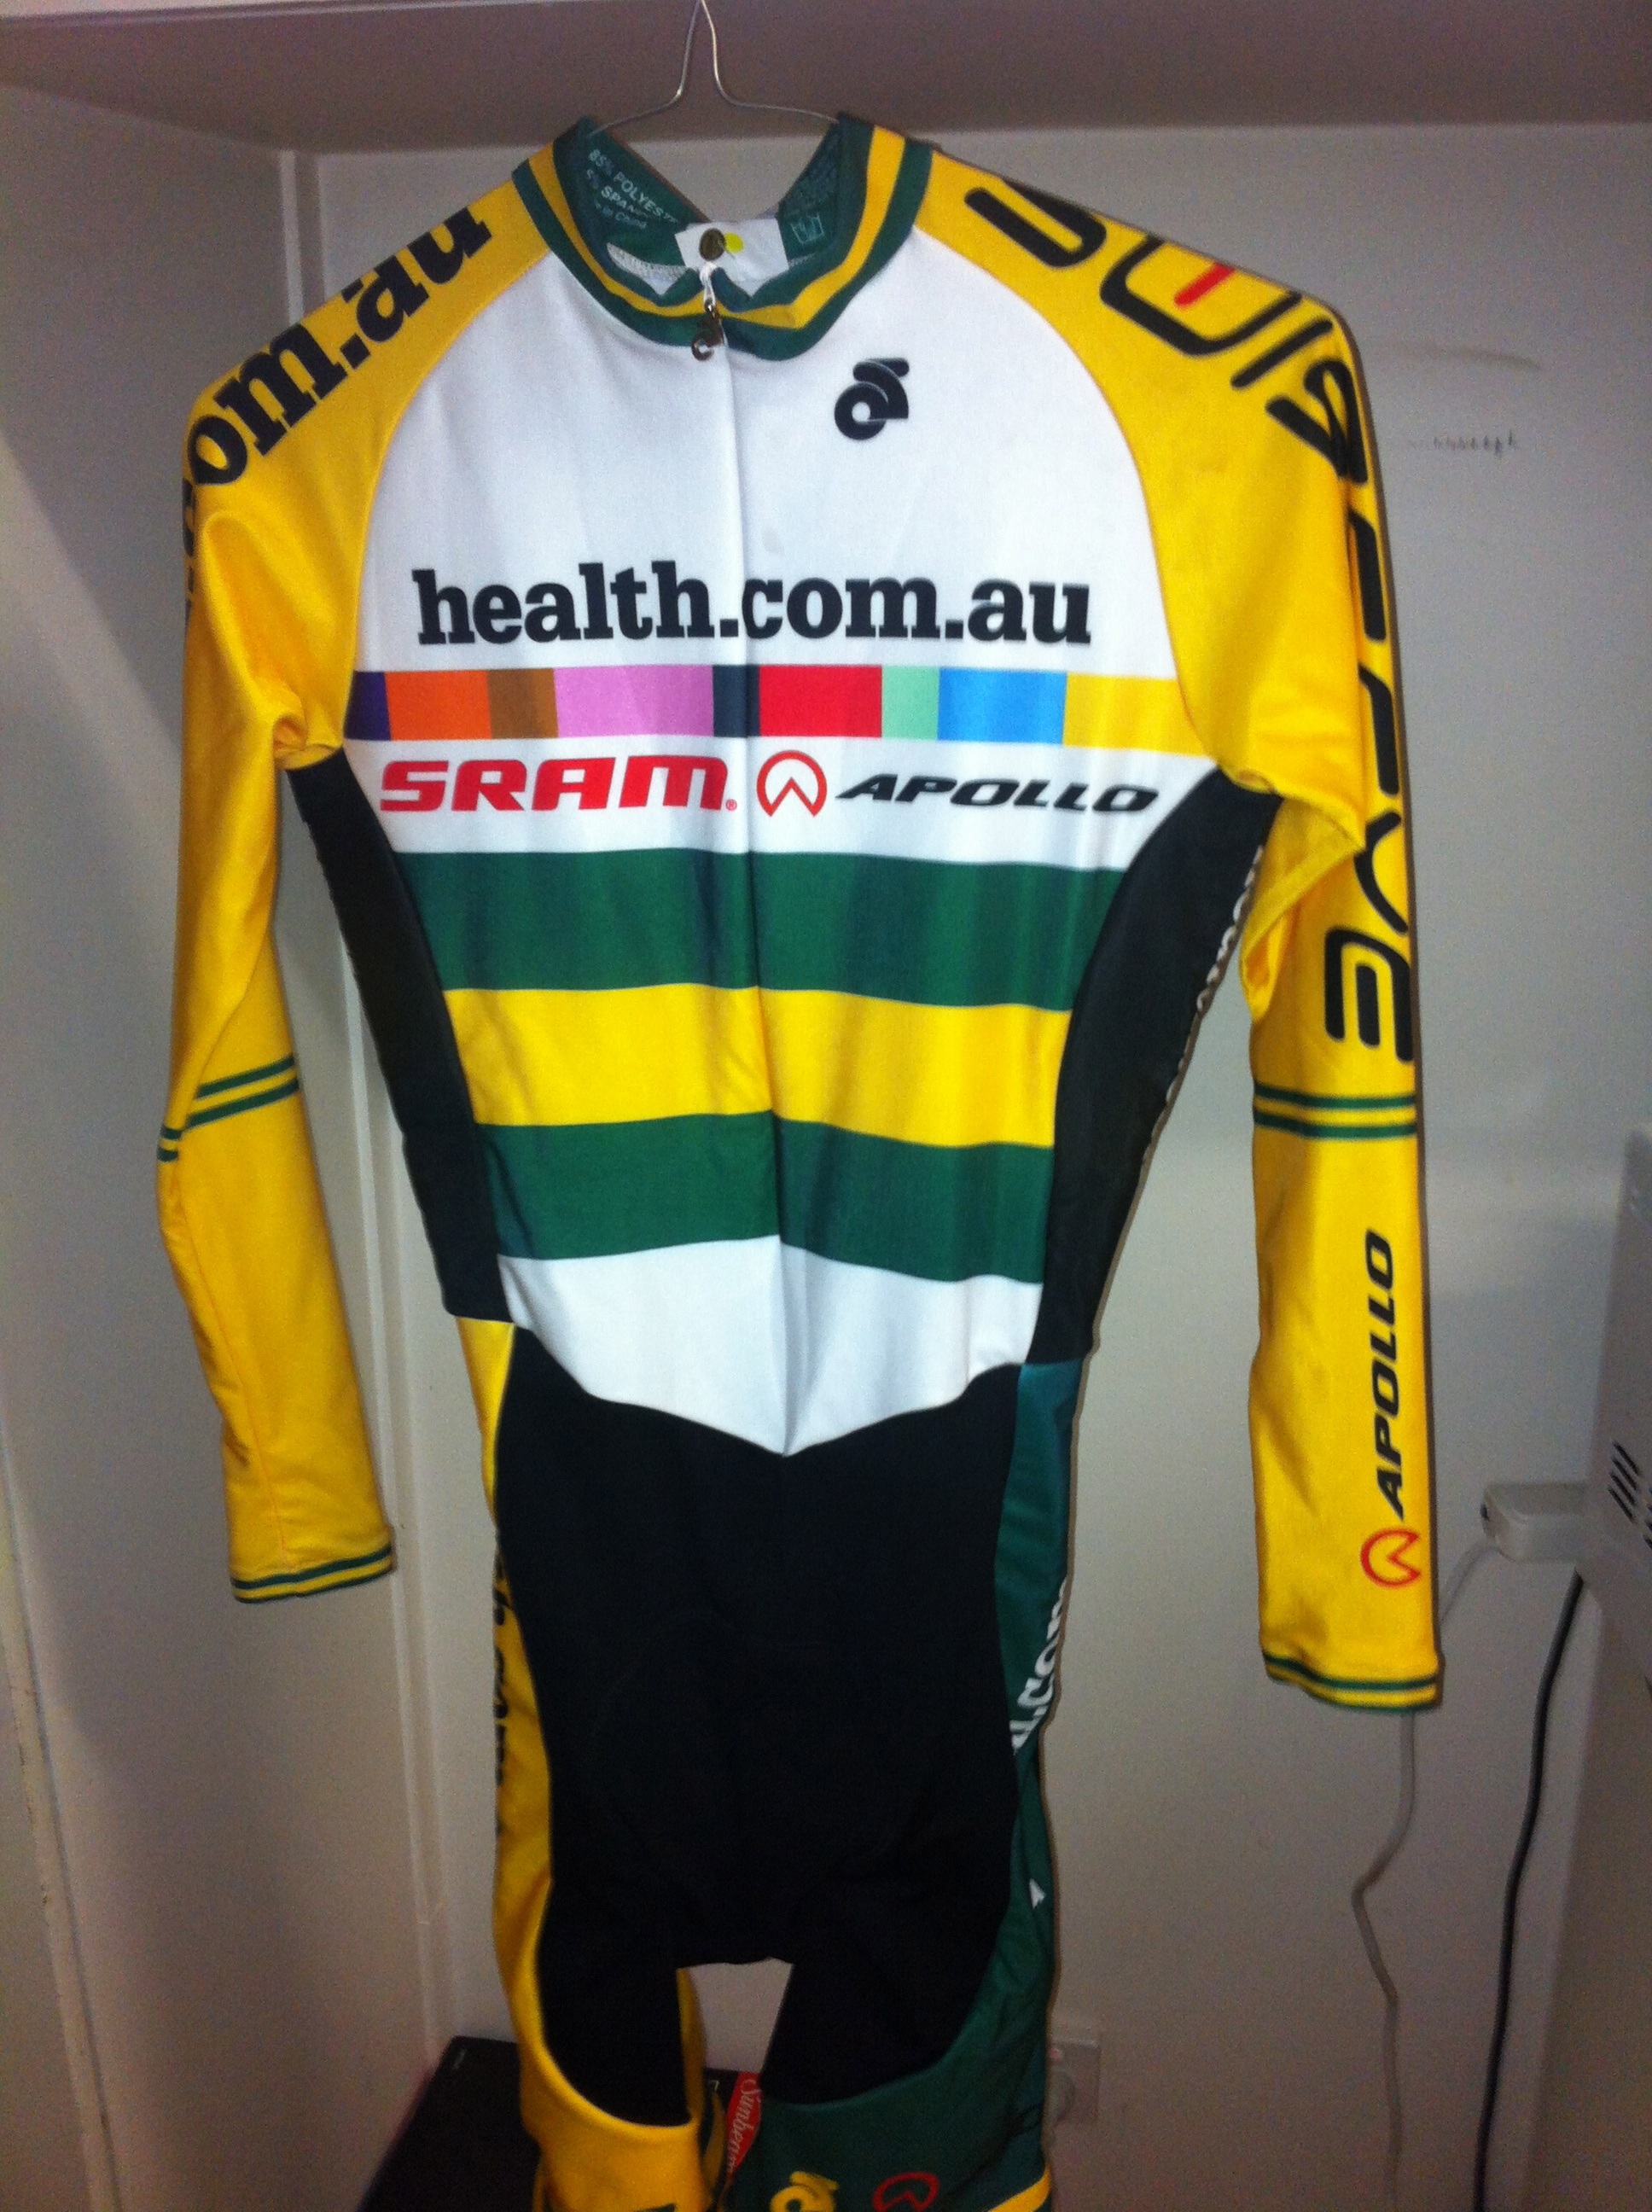 My fleecy national champ onesie, thanks to health.com.au